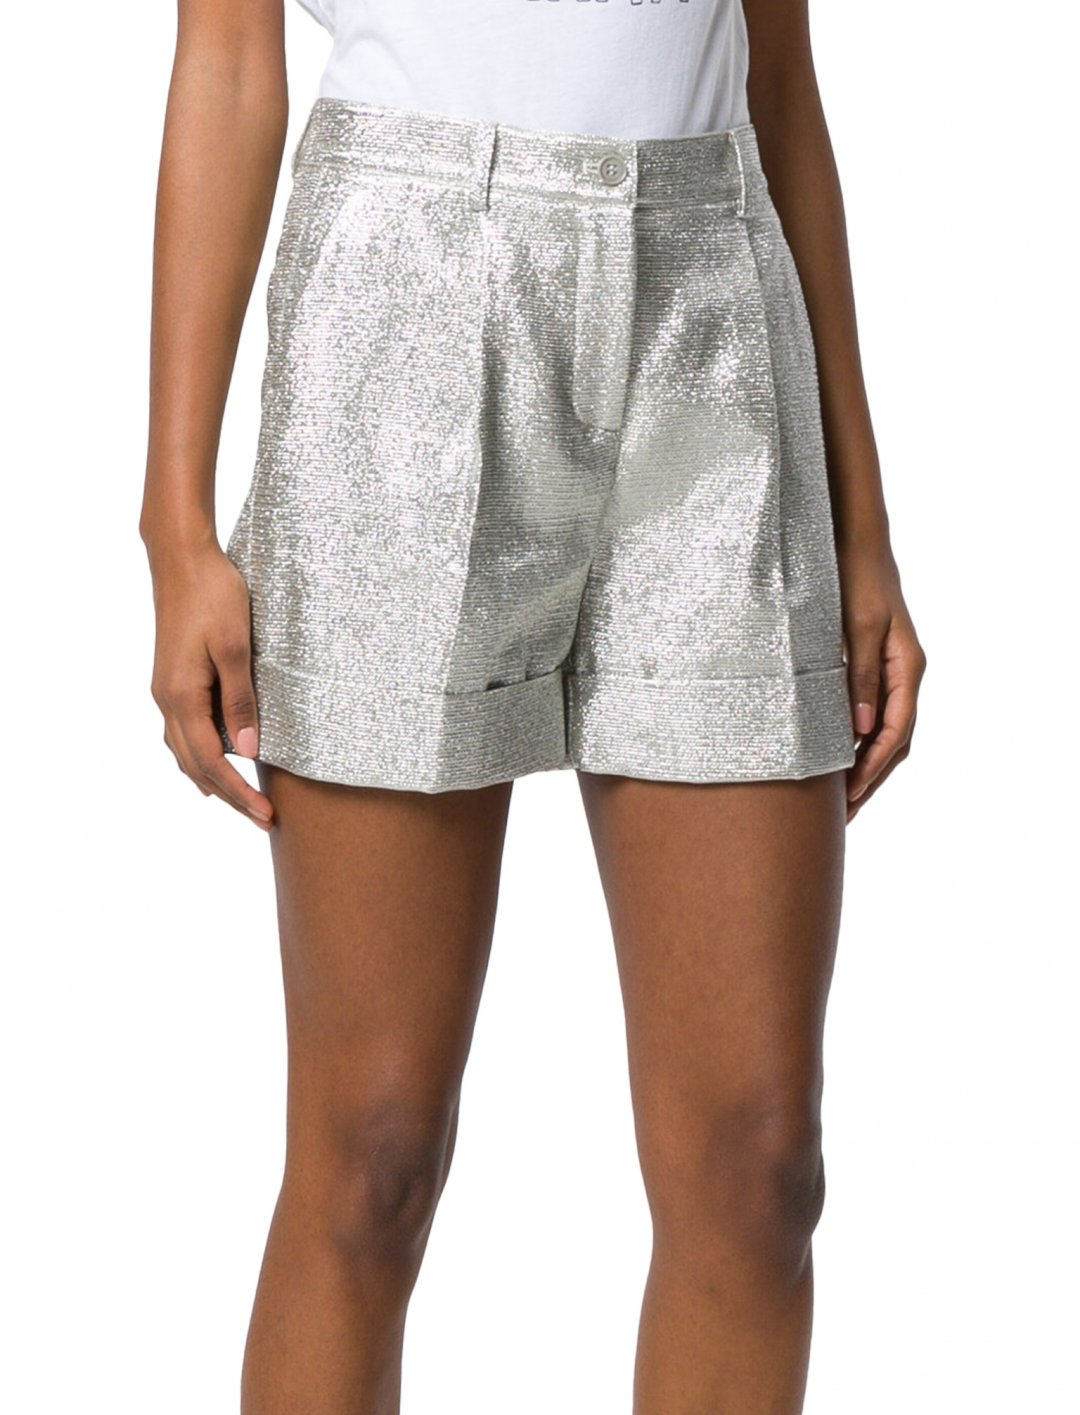 "P.A.R.O.S.H. High Waist Shorts {""id"":5,""product_section_id"":1,""name"":""Clothing"",""order"":5} P.A.R.O.S.H."